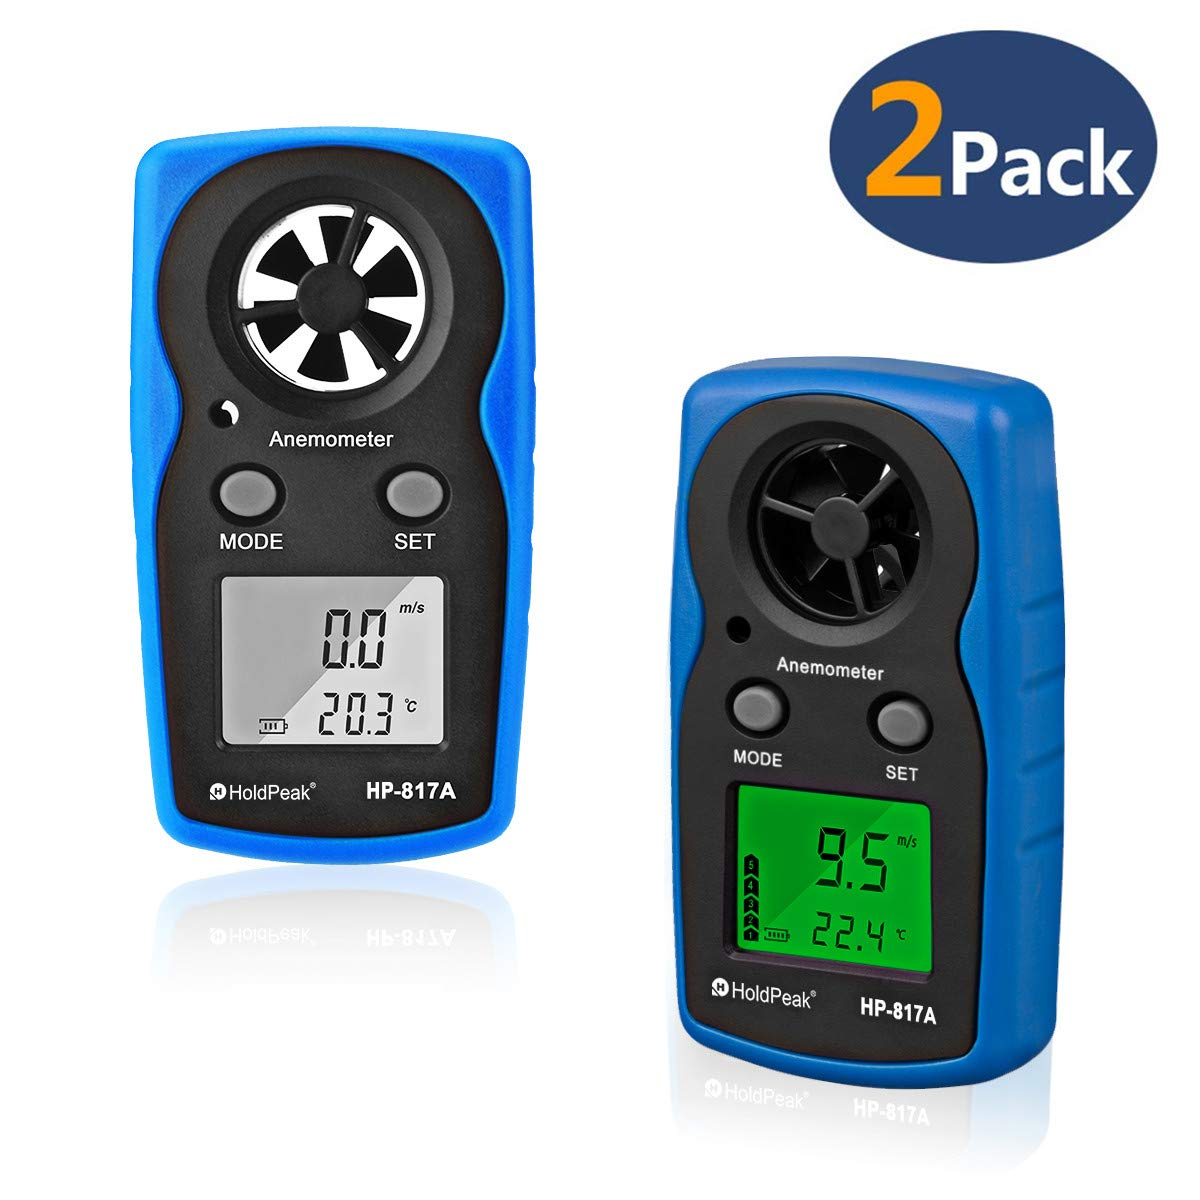 HOLDPEAK 817A Digital Anemometer Handheld Pocket Sized Wind Speed Meter for Measures Wind Speed, Temperature, Wind Chill with Backlight and Auto/Manual Power Off (2packs)